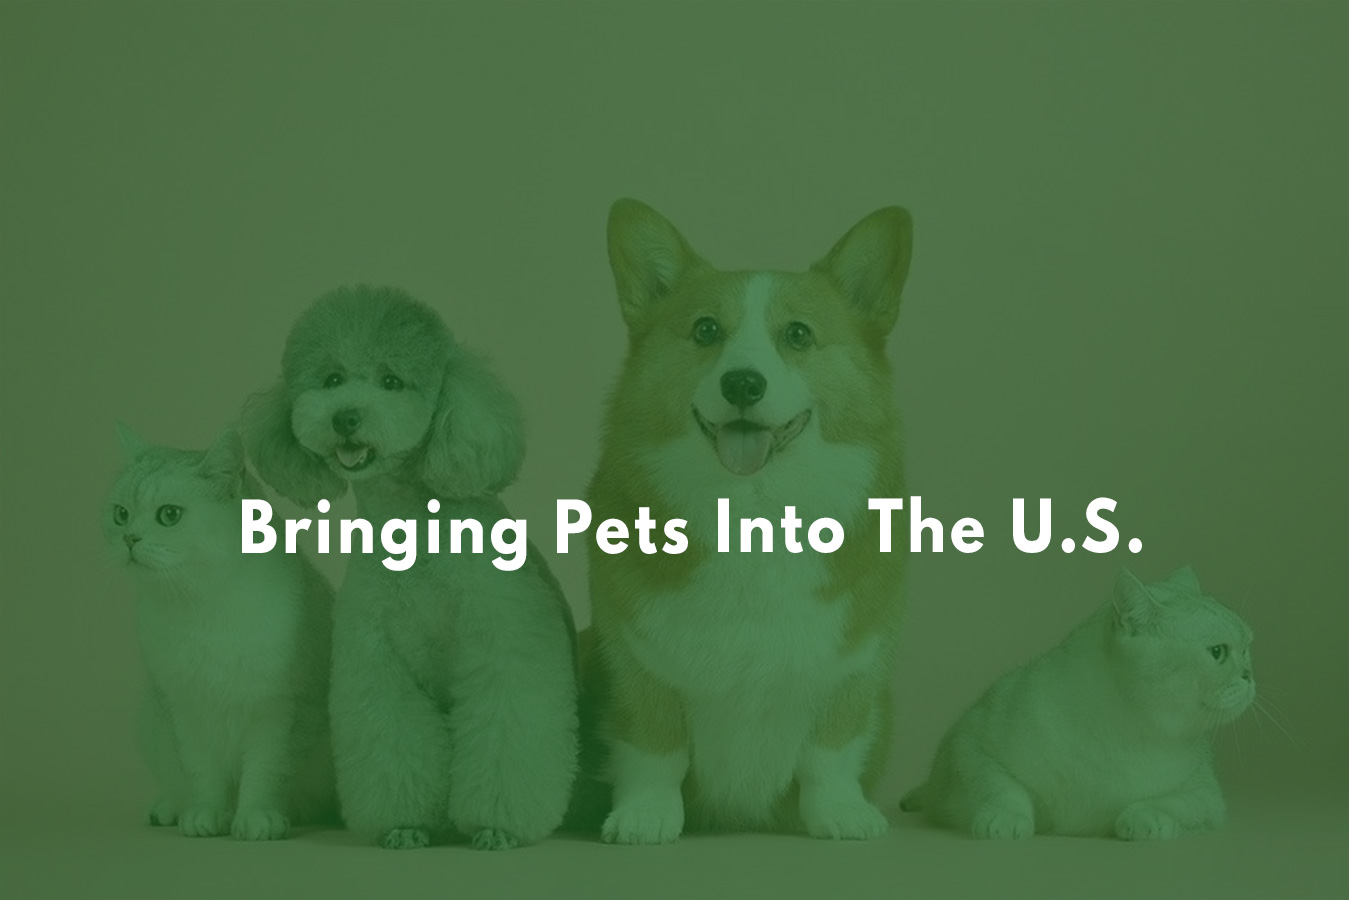 What are the requirements to bring a dog into the U.S.?